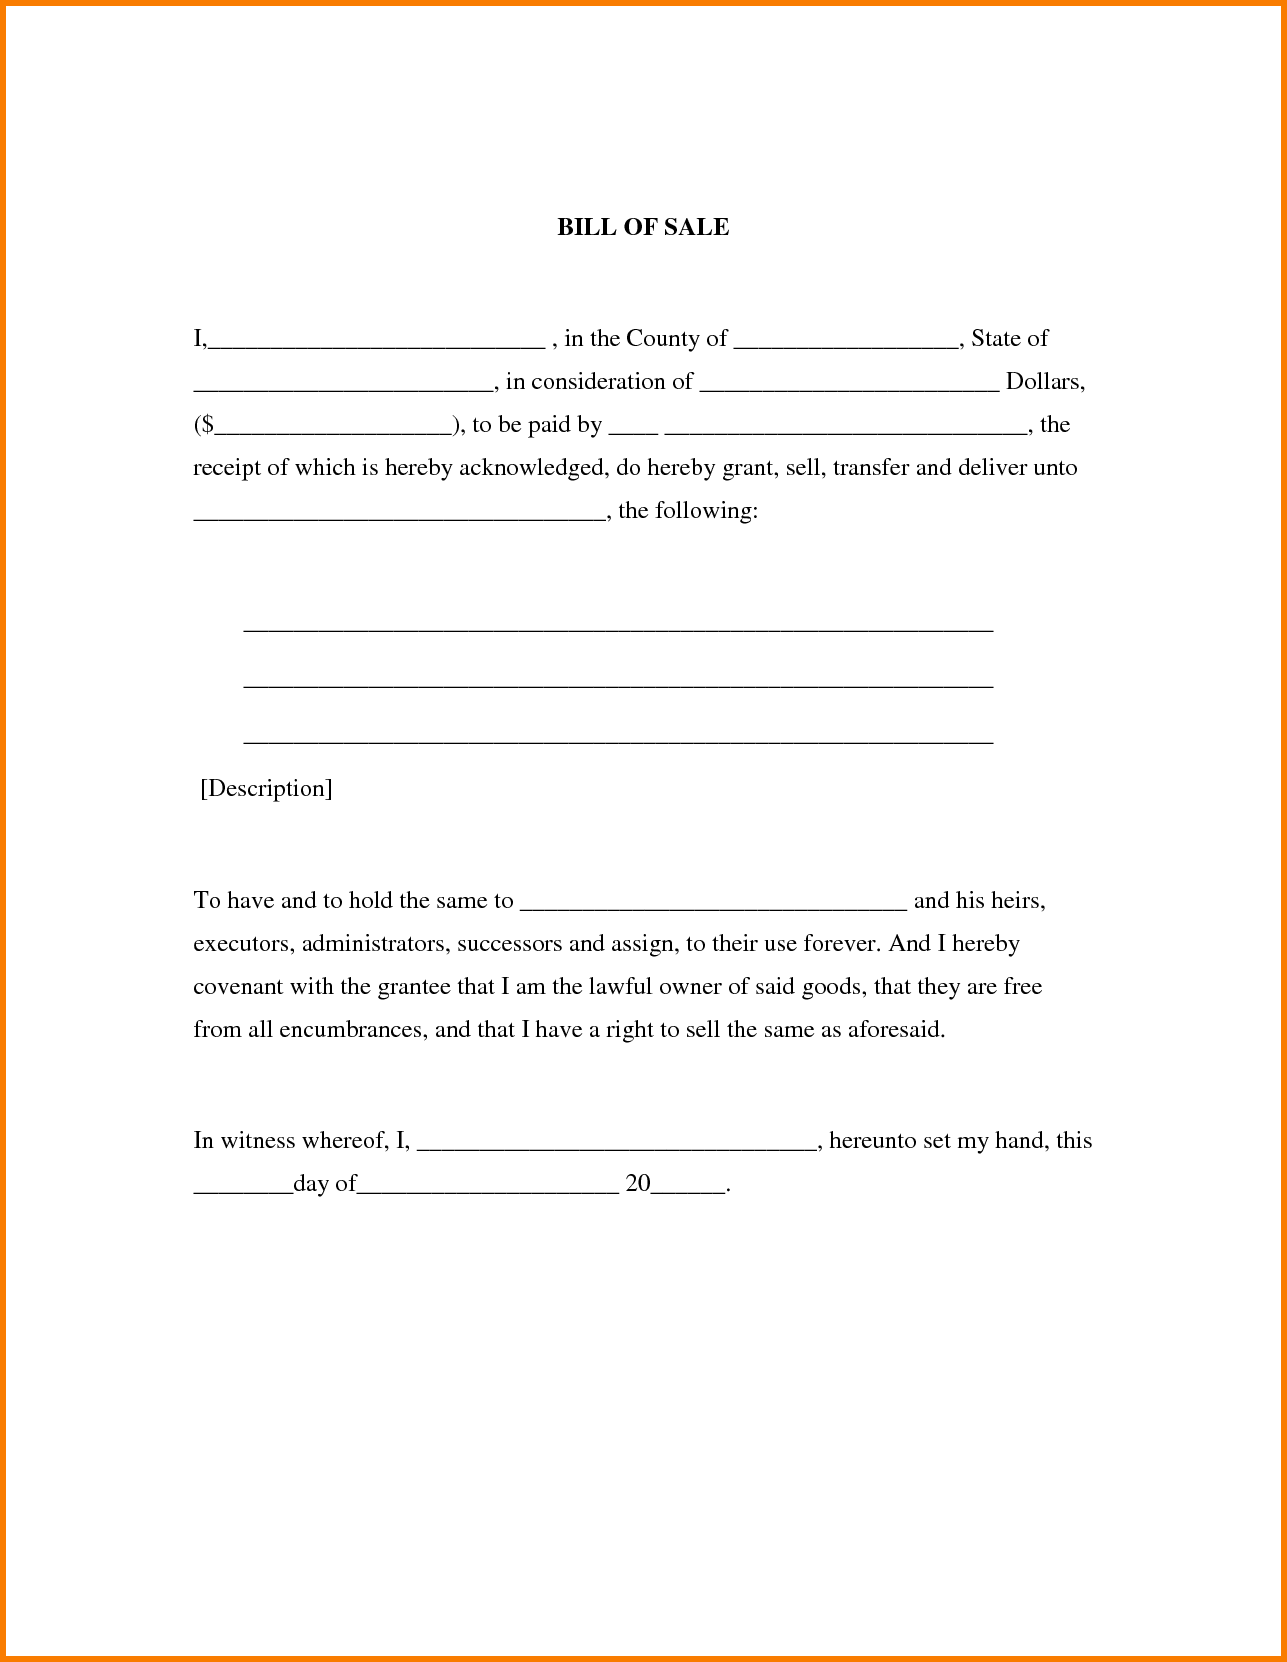 Examples Of Bill Of Sales and 5 Example Of A Bill Of Sale Receipt Templates